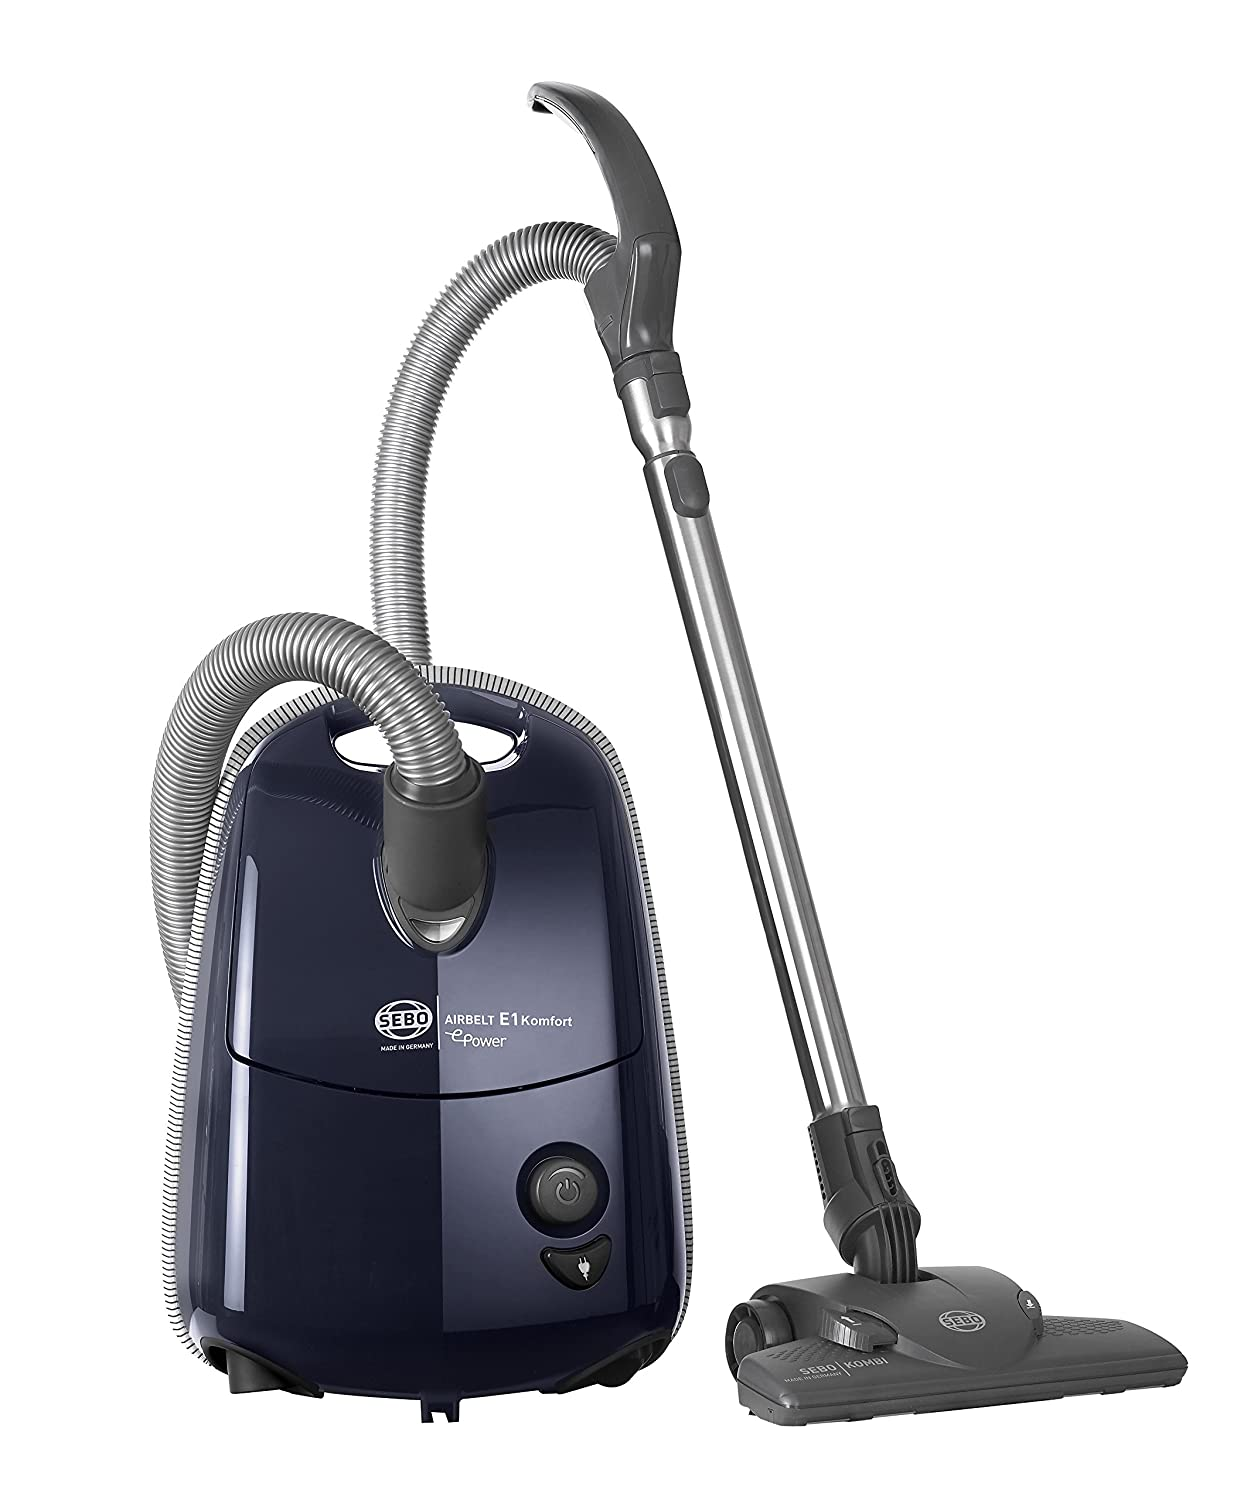 SEBO 92624GB E1 Komfort ePower Airbelt Vacuum Cleaner, 890 W, Dark Blue [Energy Class C]